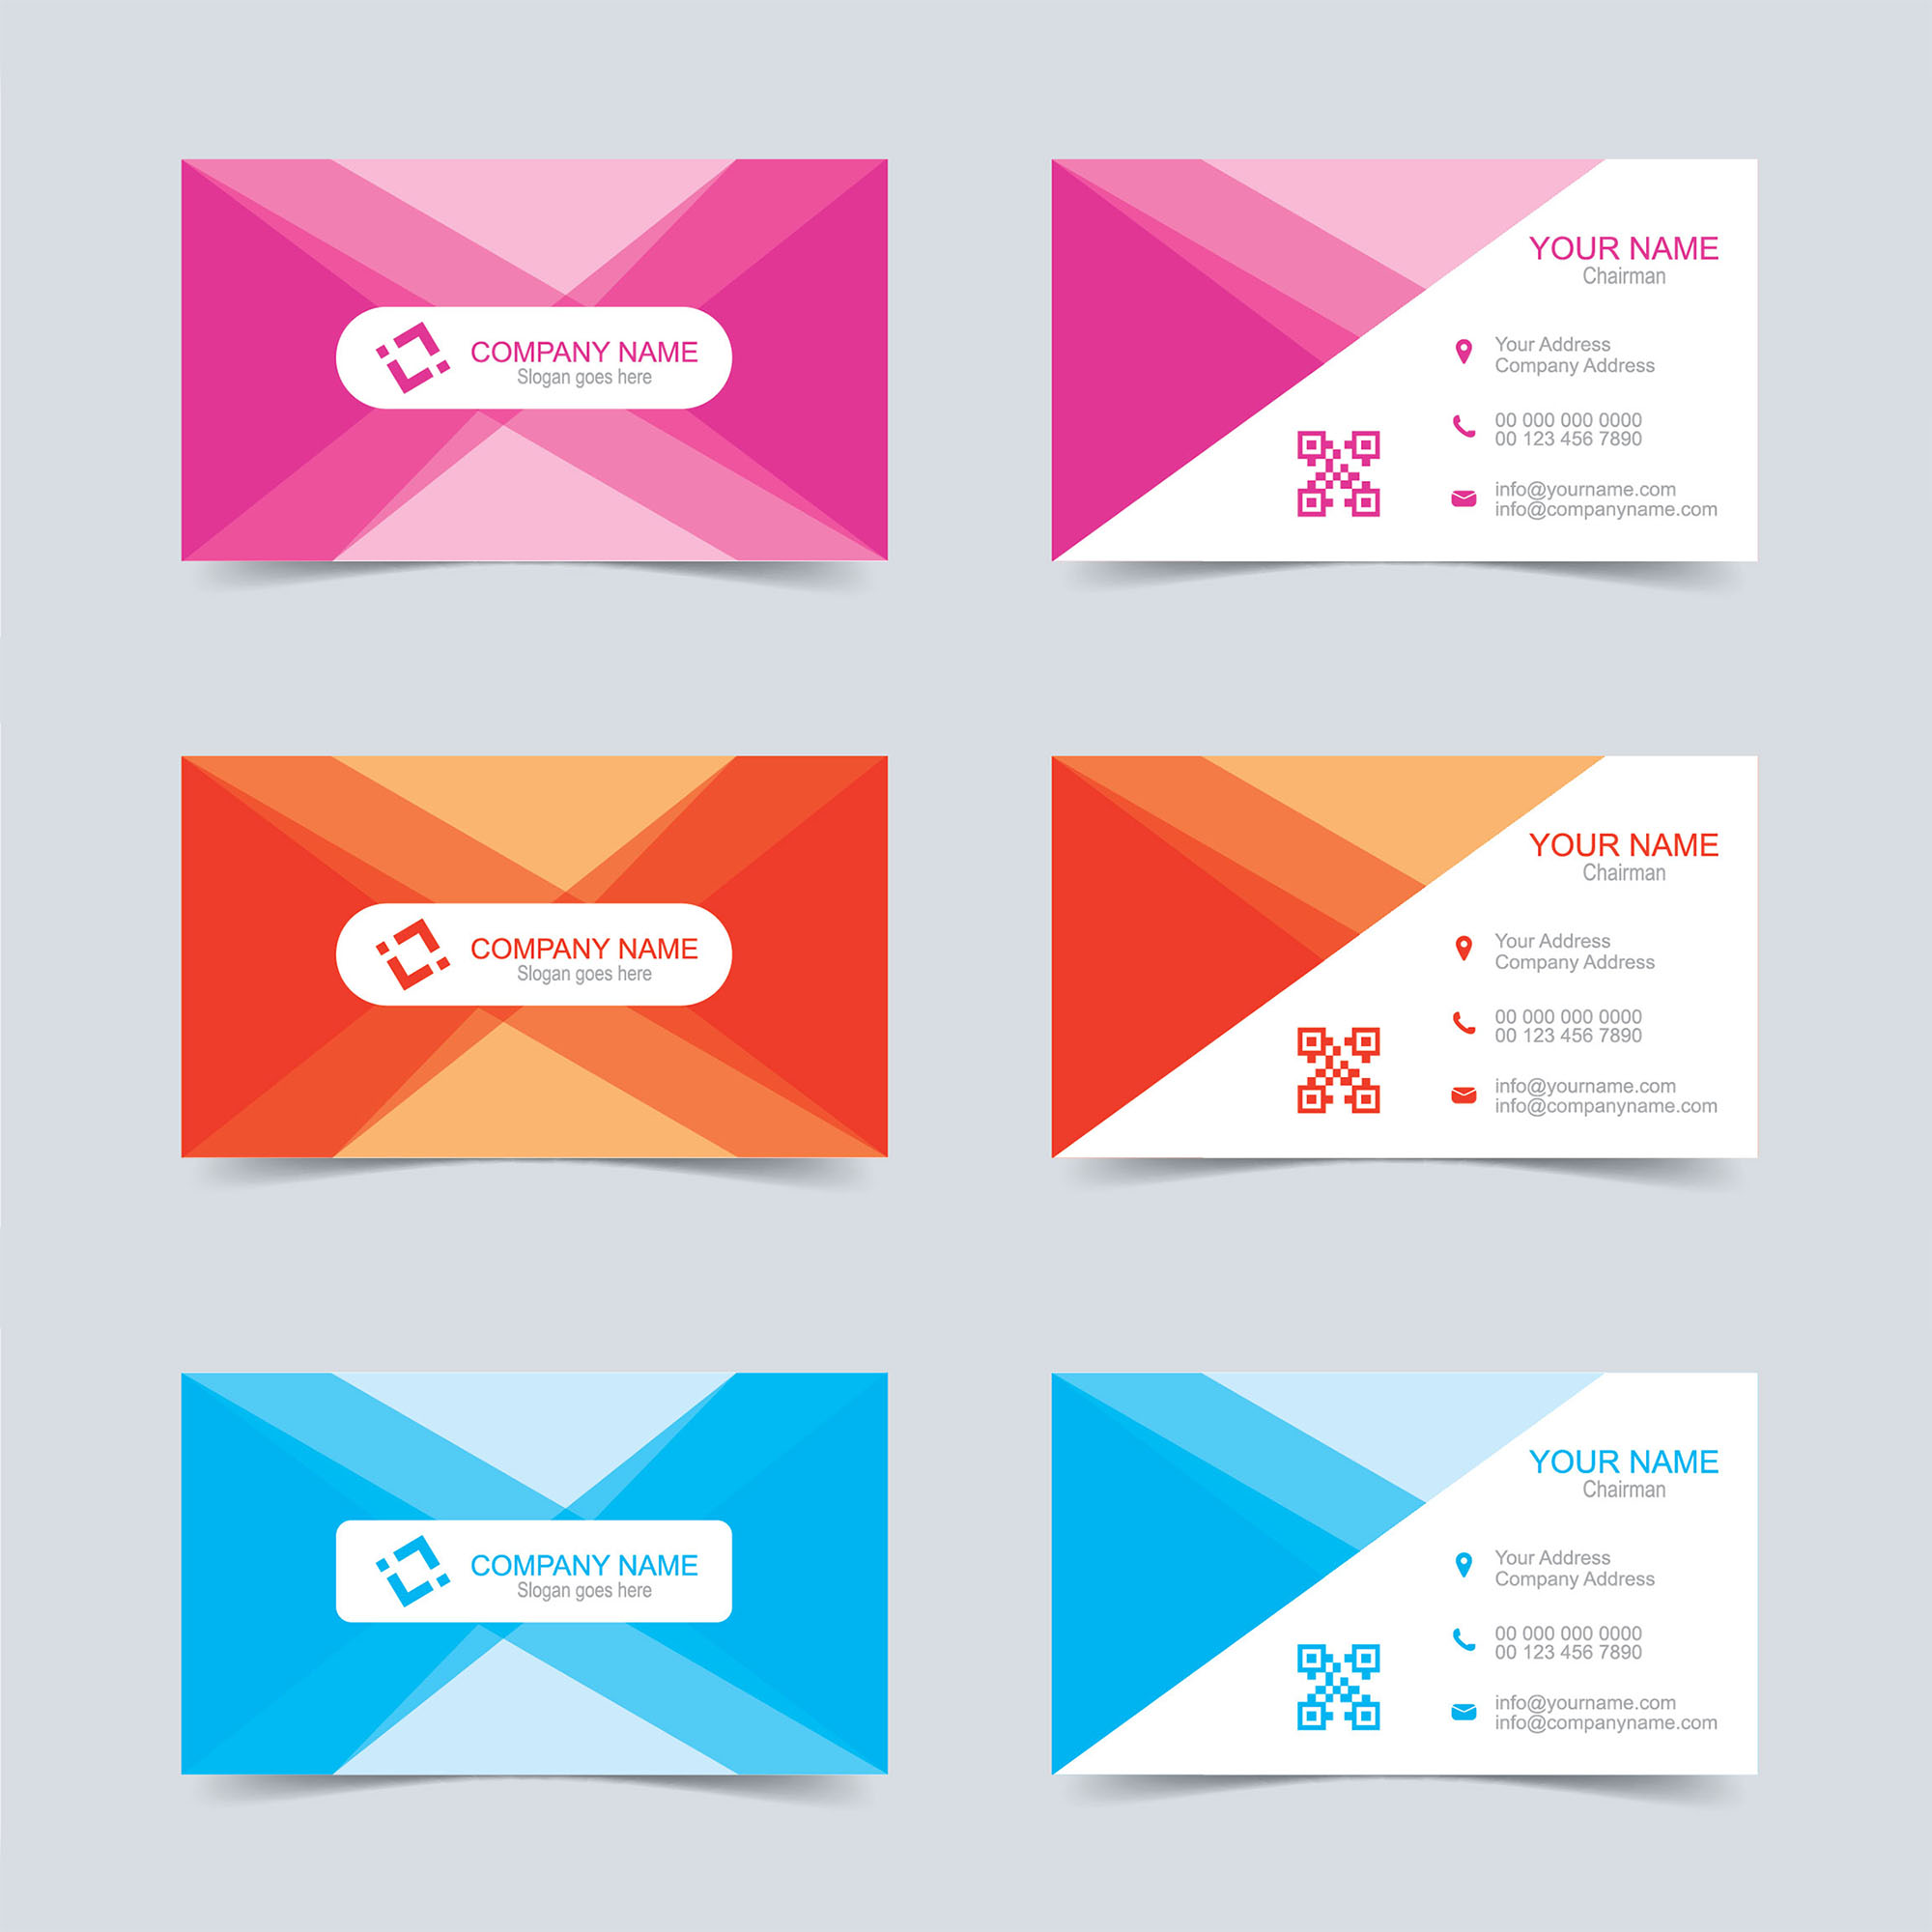 Vector business card template free download wisxi business card business cards business card design business card template design templates accmission Gallery